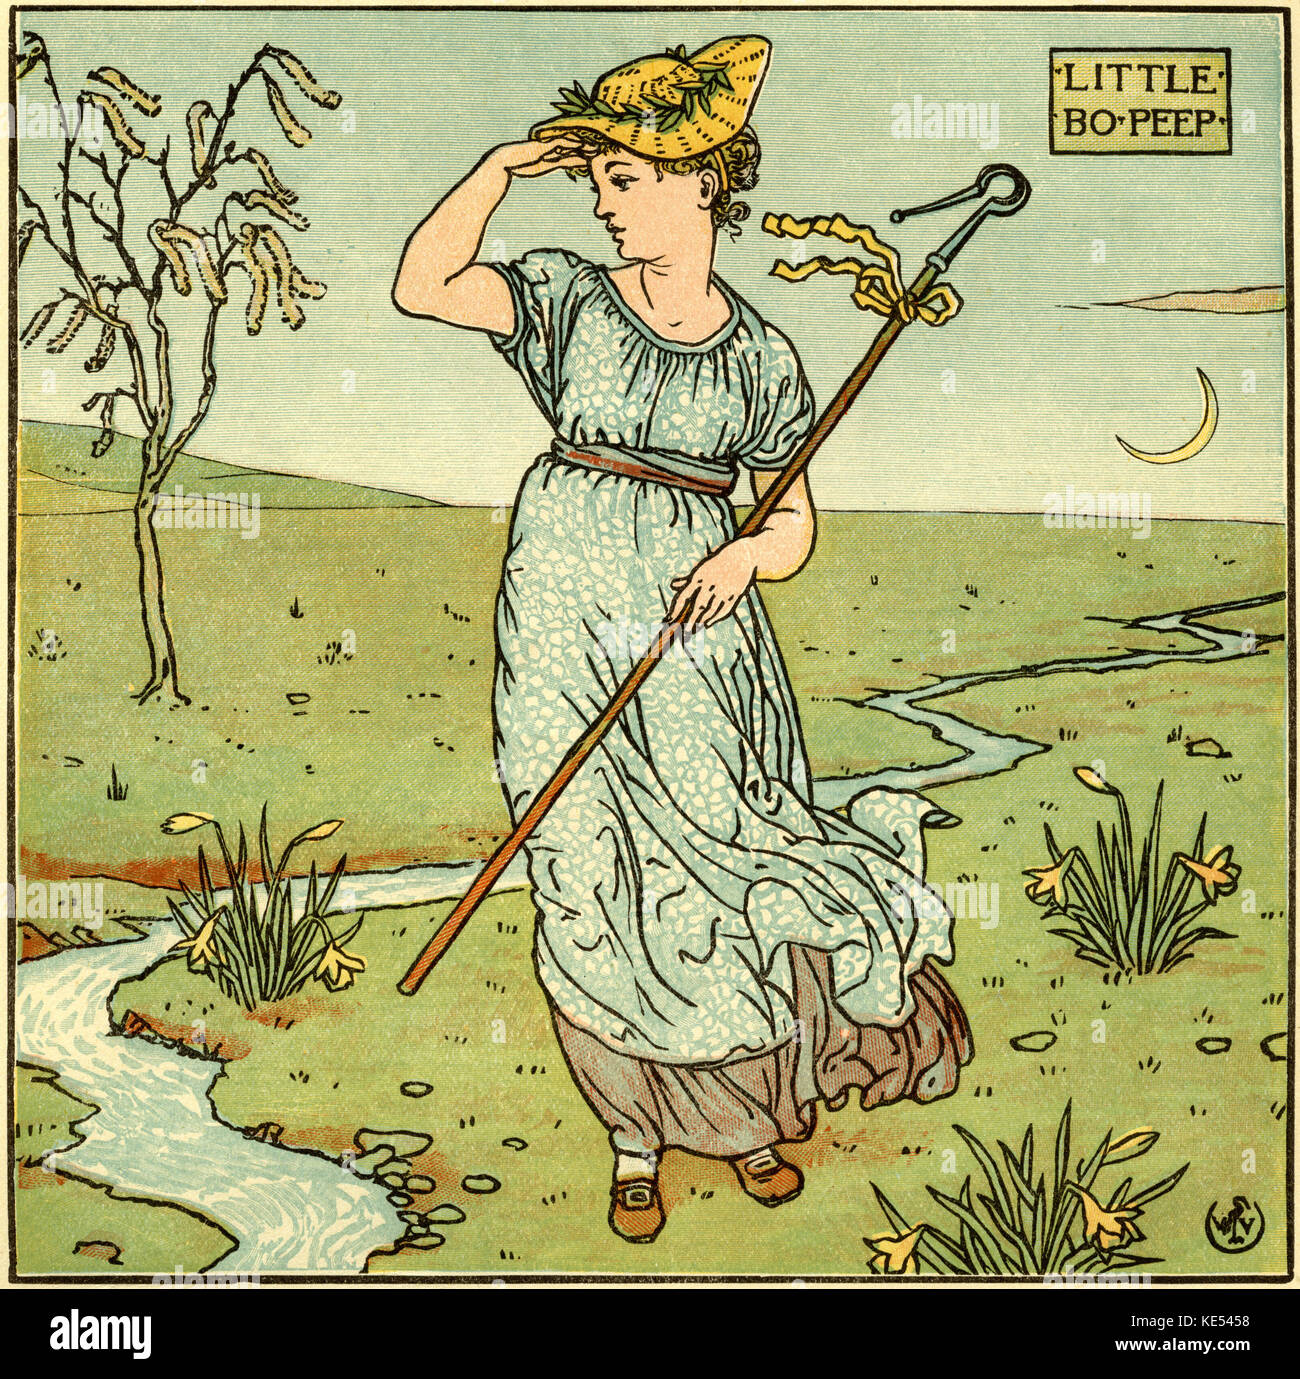 Little Bo Peep, nursery rhyme, illustration (1877) by Walter Crane. English artist of Arts and Crafts movement, - Stock Image